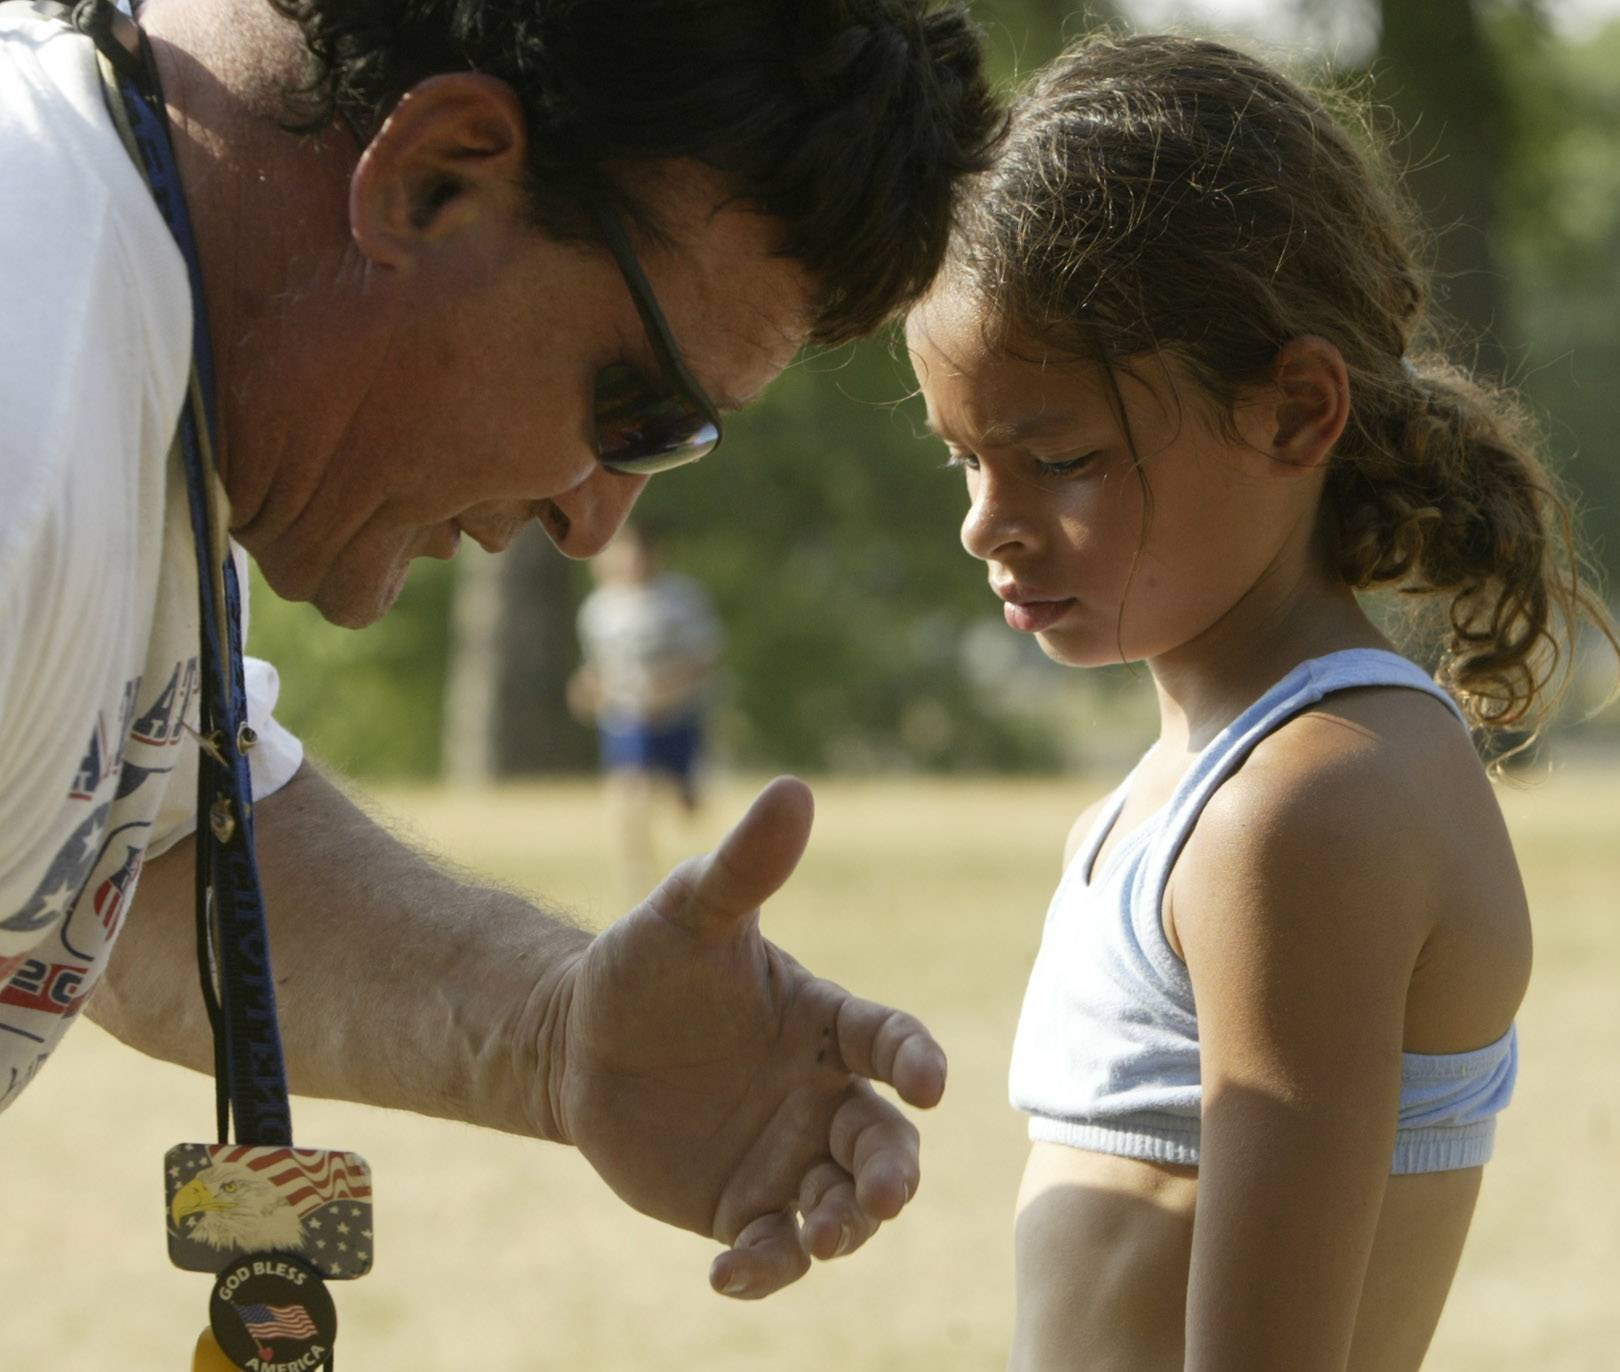 Bob Pleticha, head coach and founder of the Elgin Sharks Track Club, works with runner Shailey Rodriguez, 8, of Elgin, during practice at Channing Park in Elgin. Pleticha dedicated his life to teaching, coaching and mentoring Elgin-area youth. He died Sept. 27.